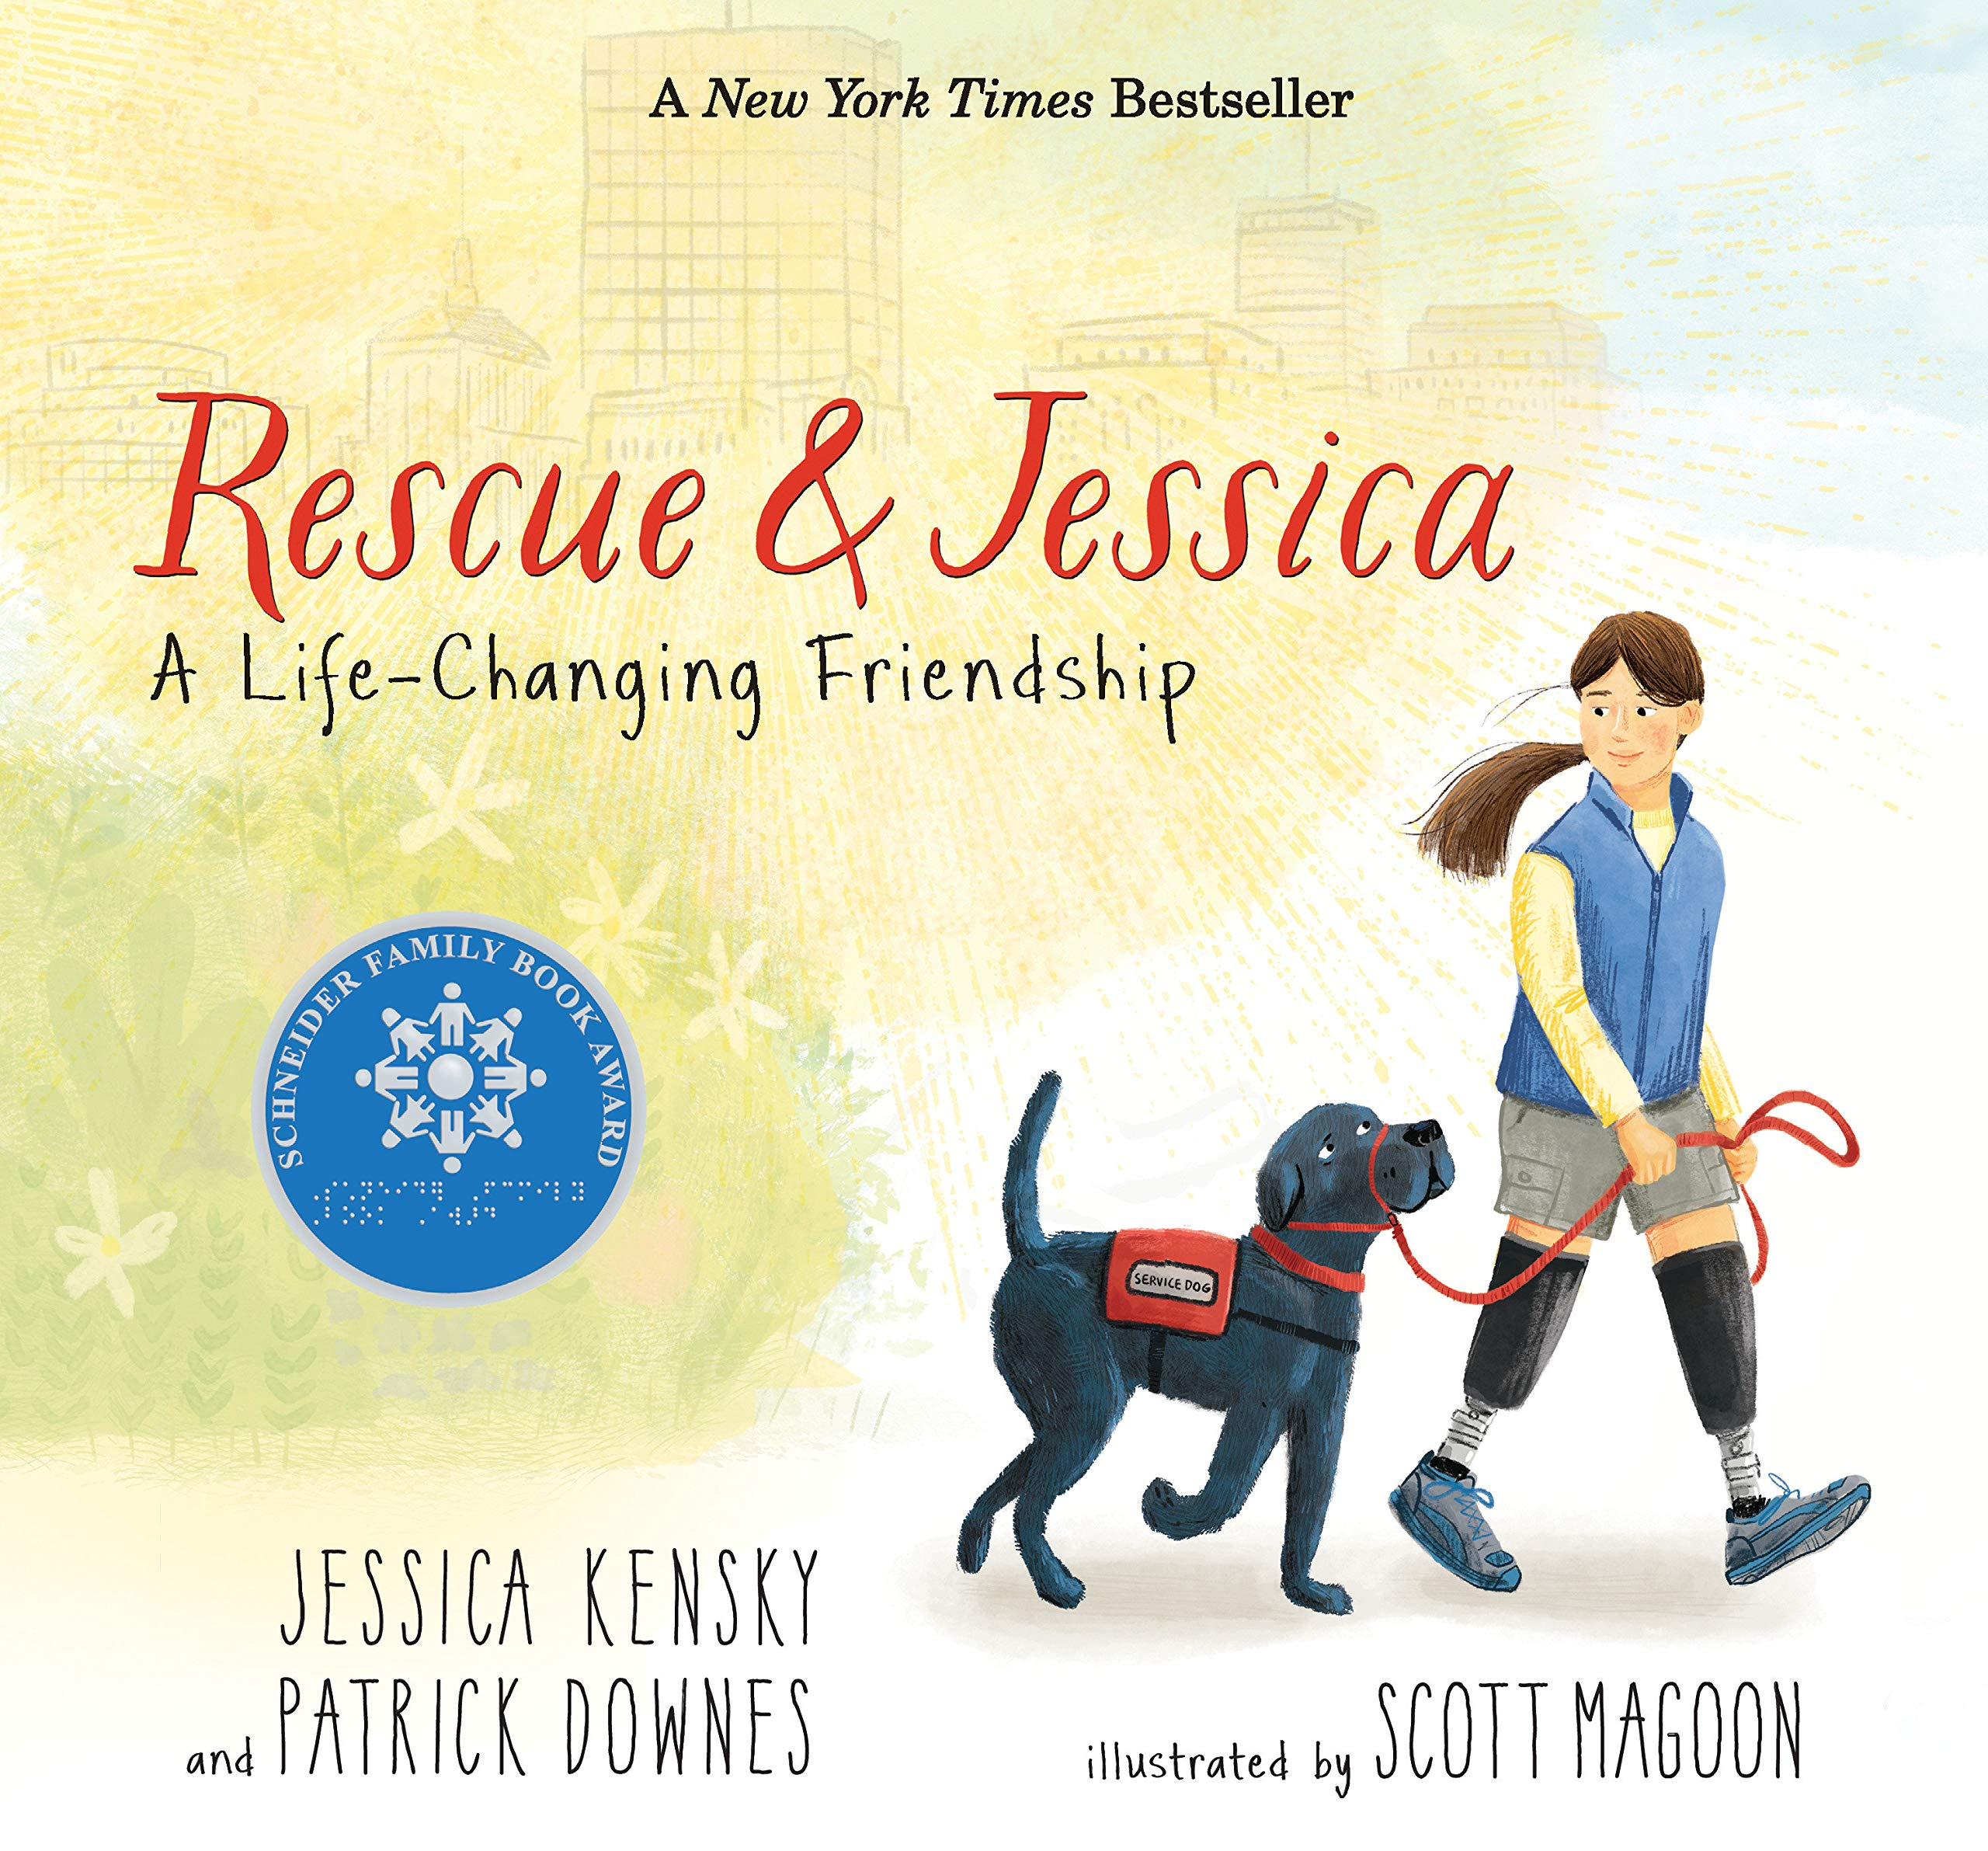 Rescue and Jessica, A Life Changing Friendship